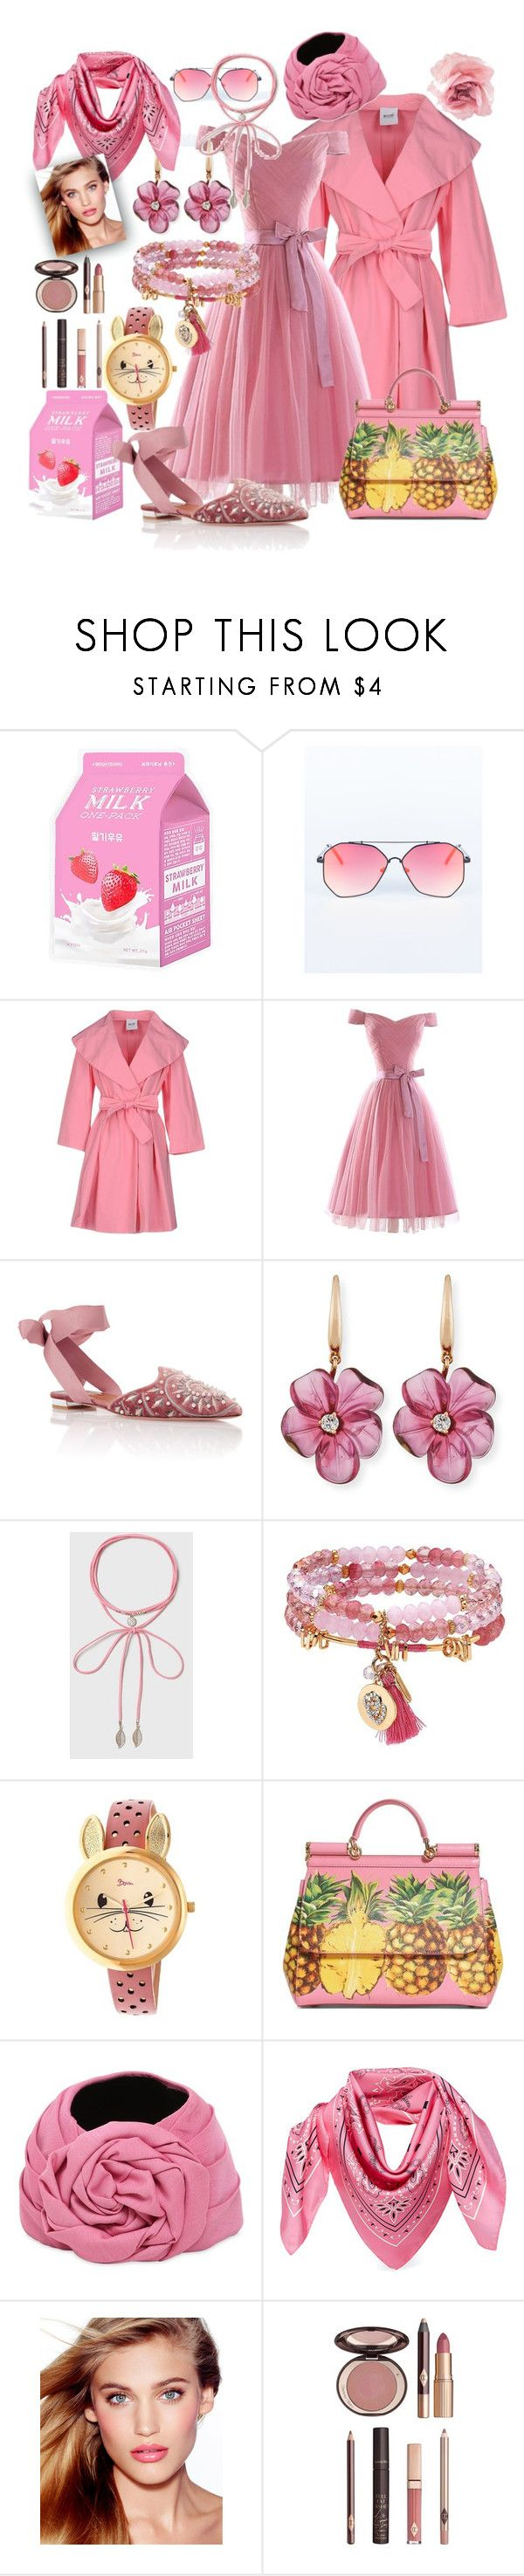 """""""pinky pie"""" by caroline-buster-brown ❤ liked on Polyvore featuring Charlotte Russe, Moschino Cheap & Chic, Aquazzura, Rina Limor, Dorothy Perkins, Lonna & Lilly, Boum, Dolce&Gabbana, Gucci and MCM"""